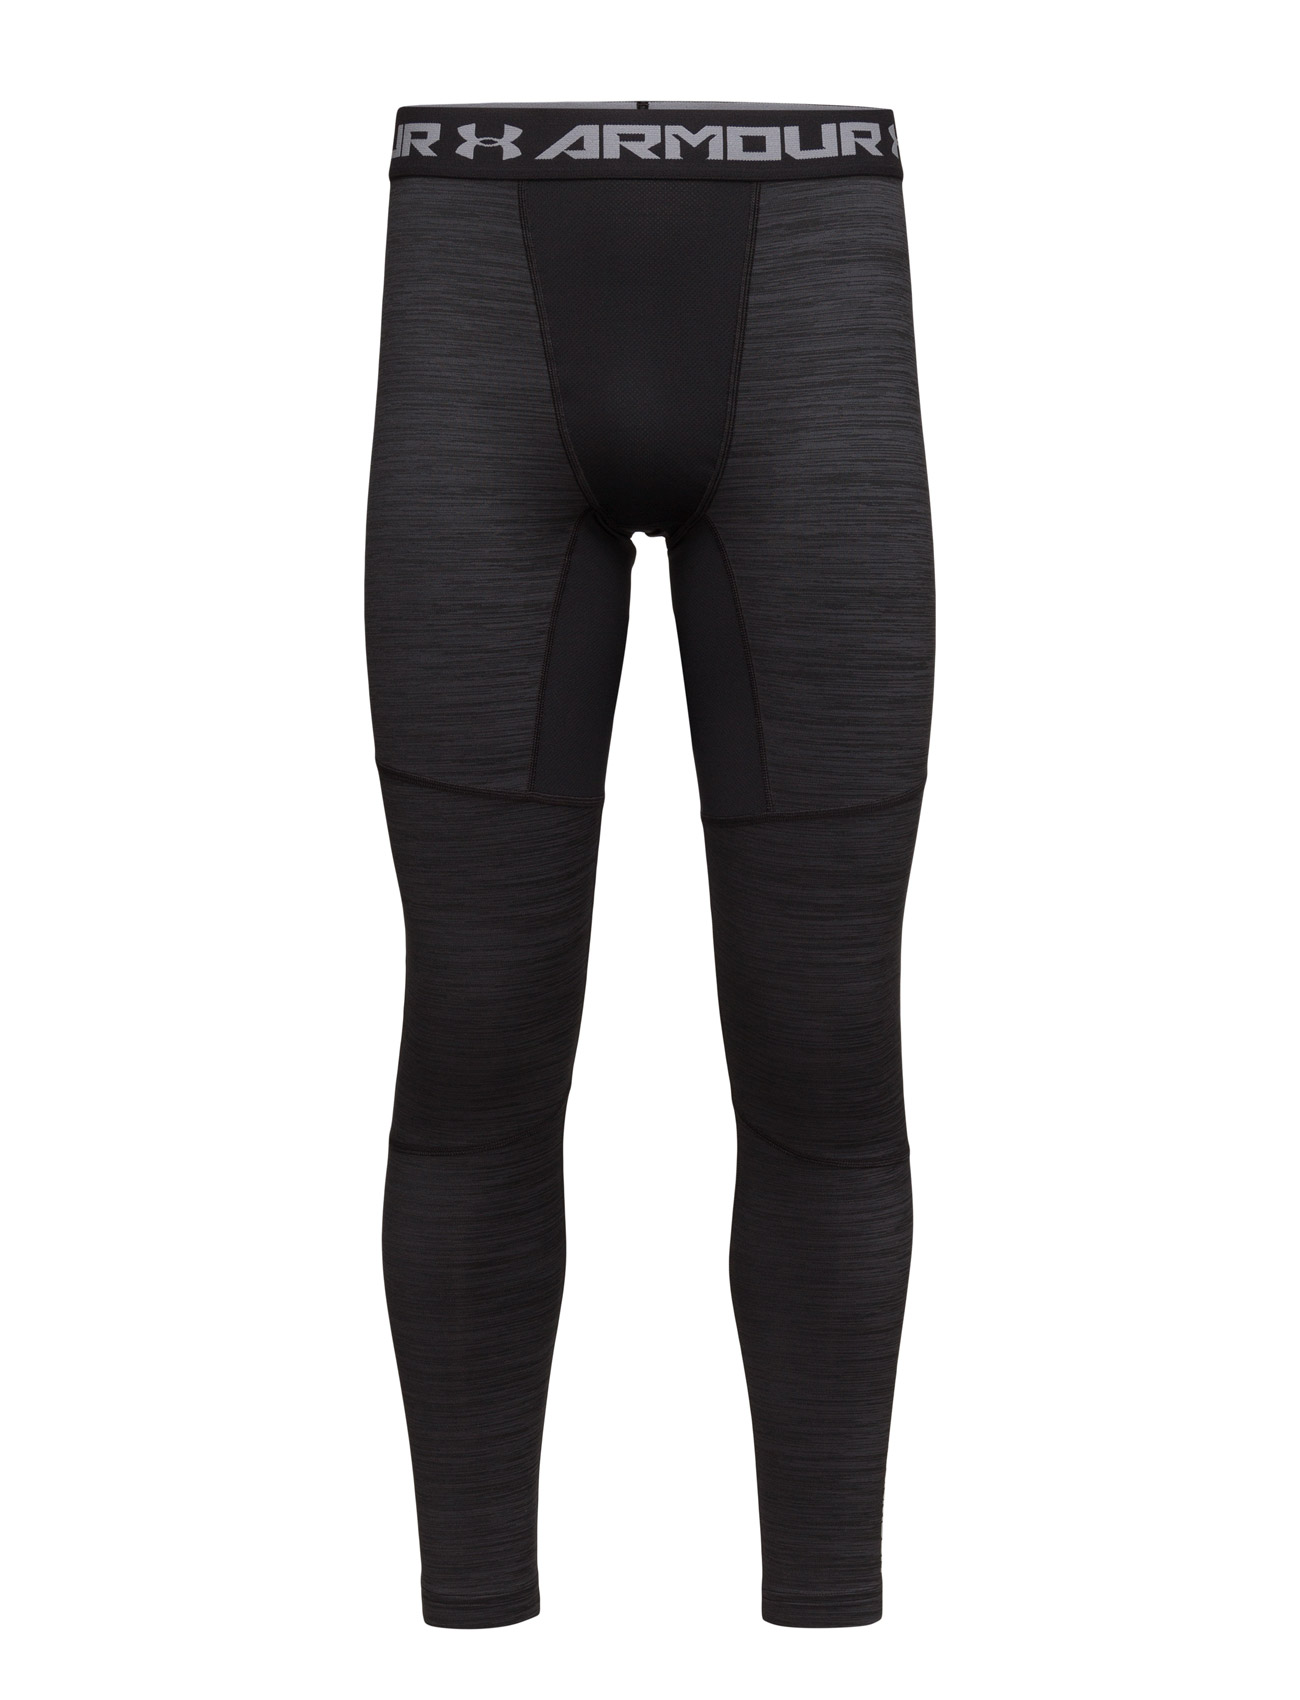 Cg Armour Twist Legging Under Armour Undertøj til Mænd i Sort